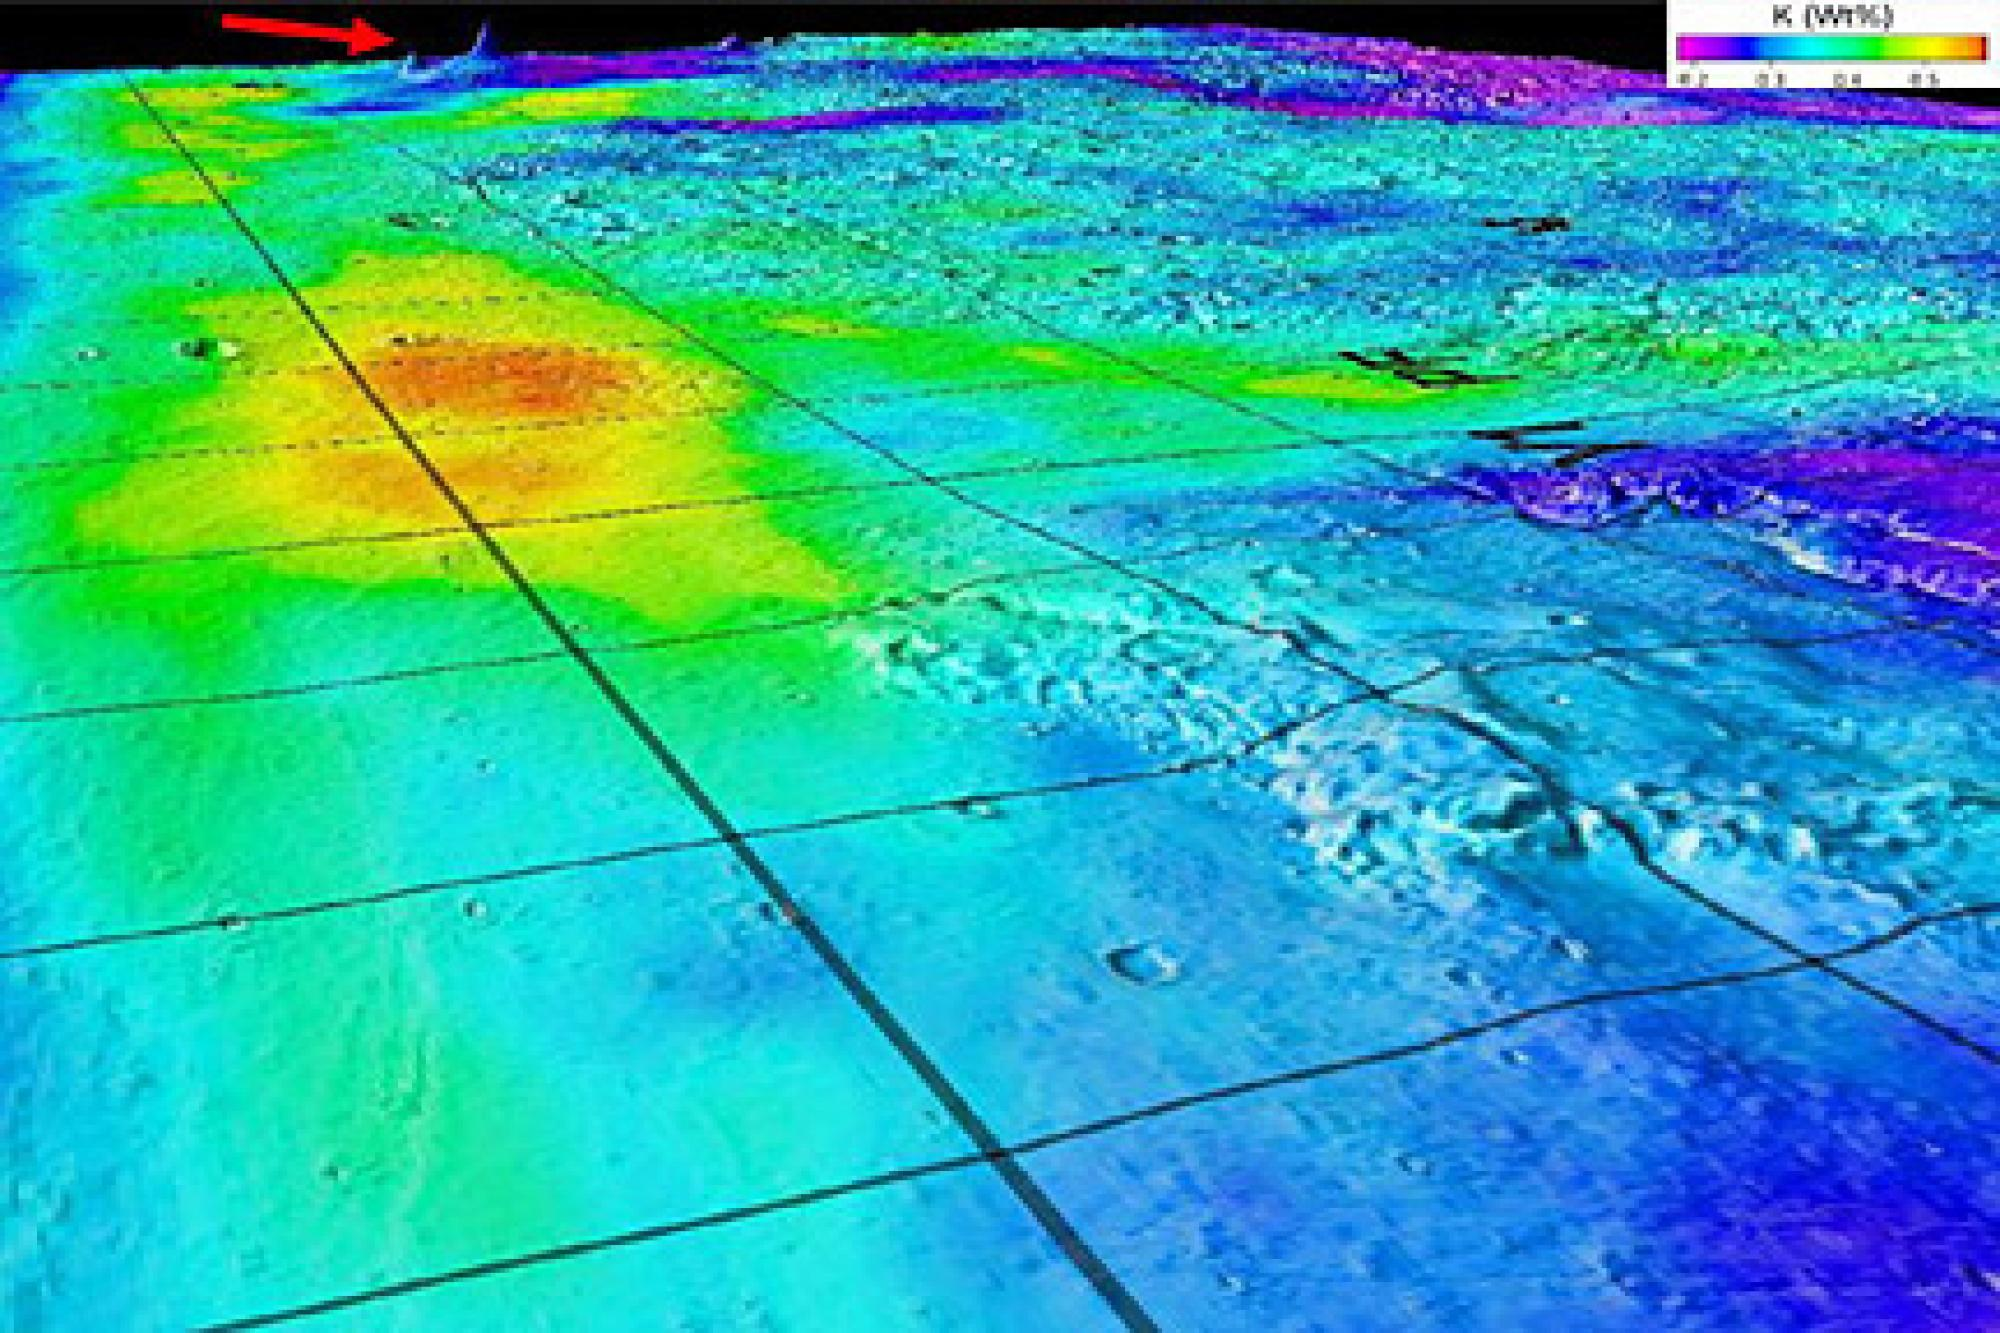 This 3D map superimposes gamma-ray data from Mars Odyssey's Gamma-Ray Spectrometer onto topographic data from the laser altimeter onboard the Mars Global Surveyor.  The red arrow indicates the shield volcanoes of Elysium rise in northern Mars, seen obliqu